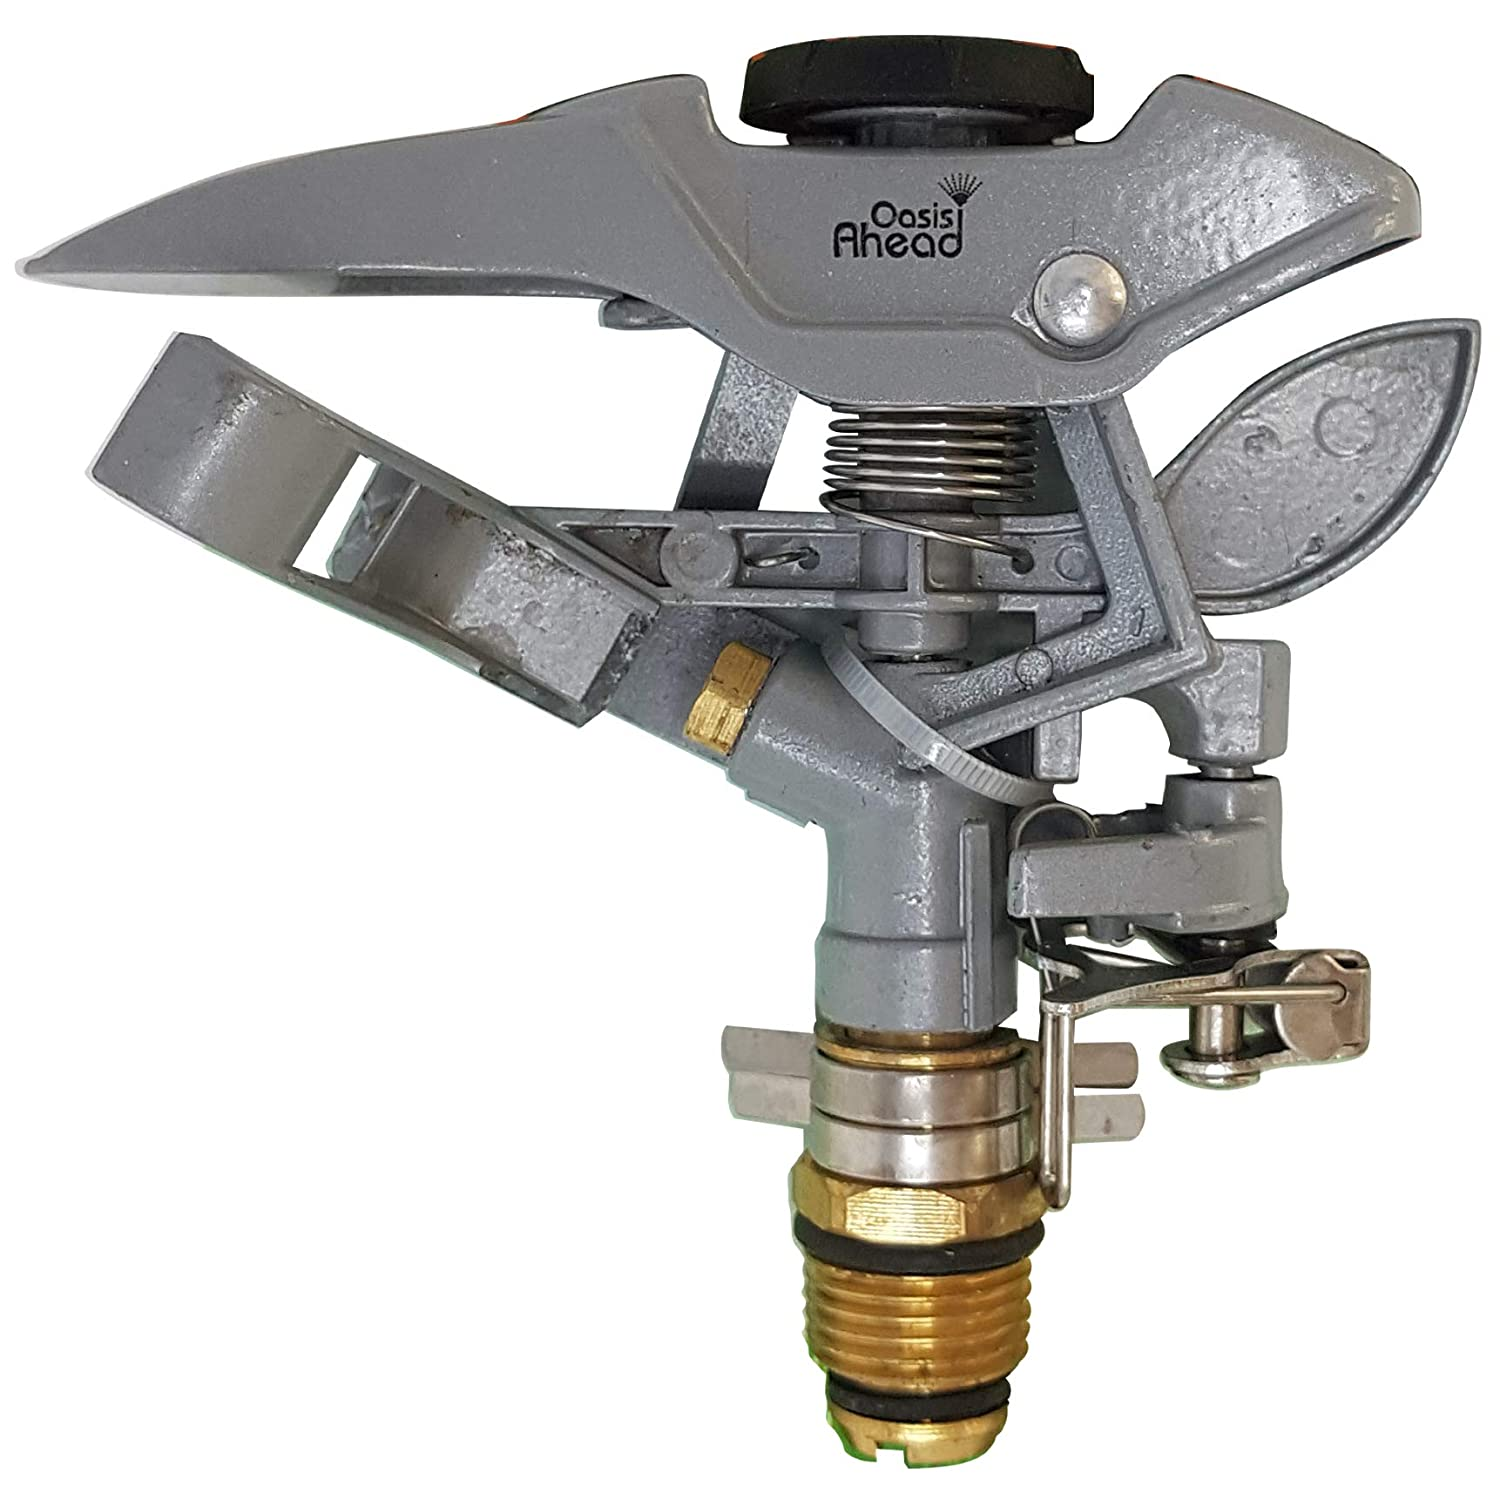 Oasis Ahead Metal Lawn Sprinkler K-300 With Long Range Pulsating Head For Up To 360 Degrees Watering Of Your Garden Including Water Shut Off Valve